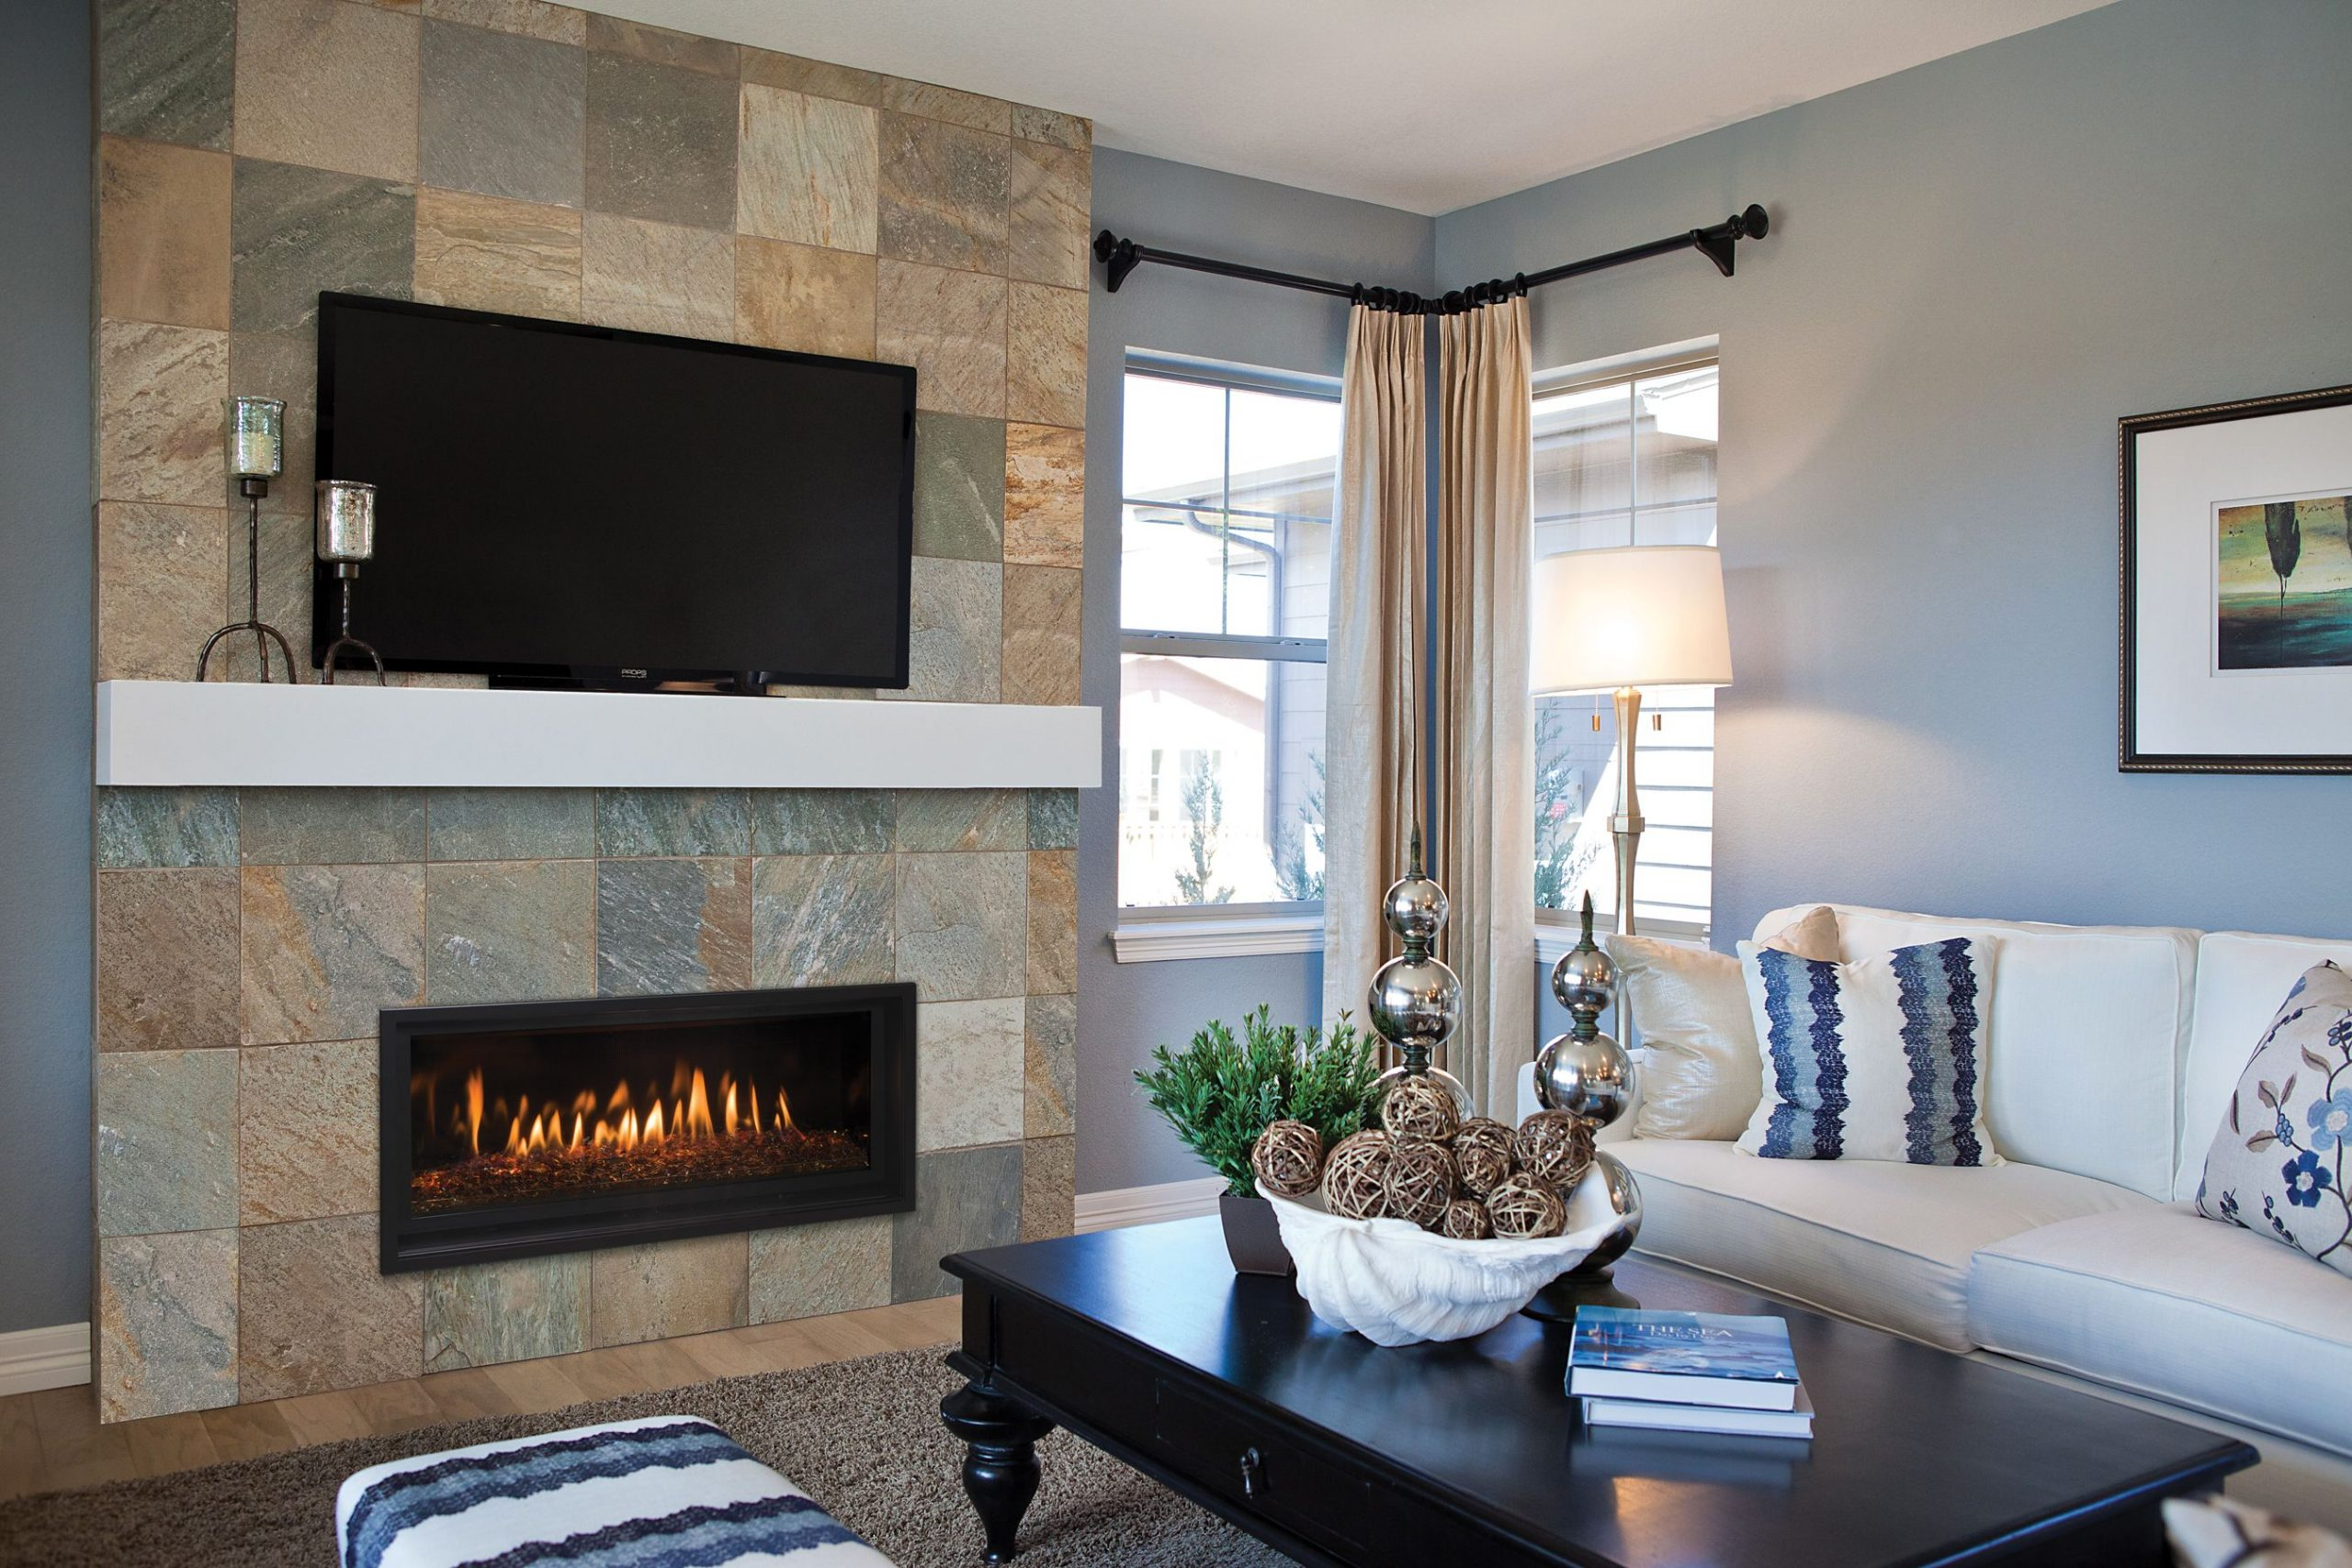 The Best Way to Buy a Fireplace Online